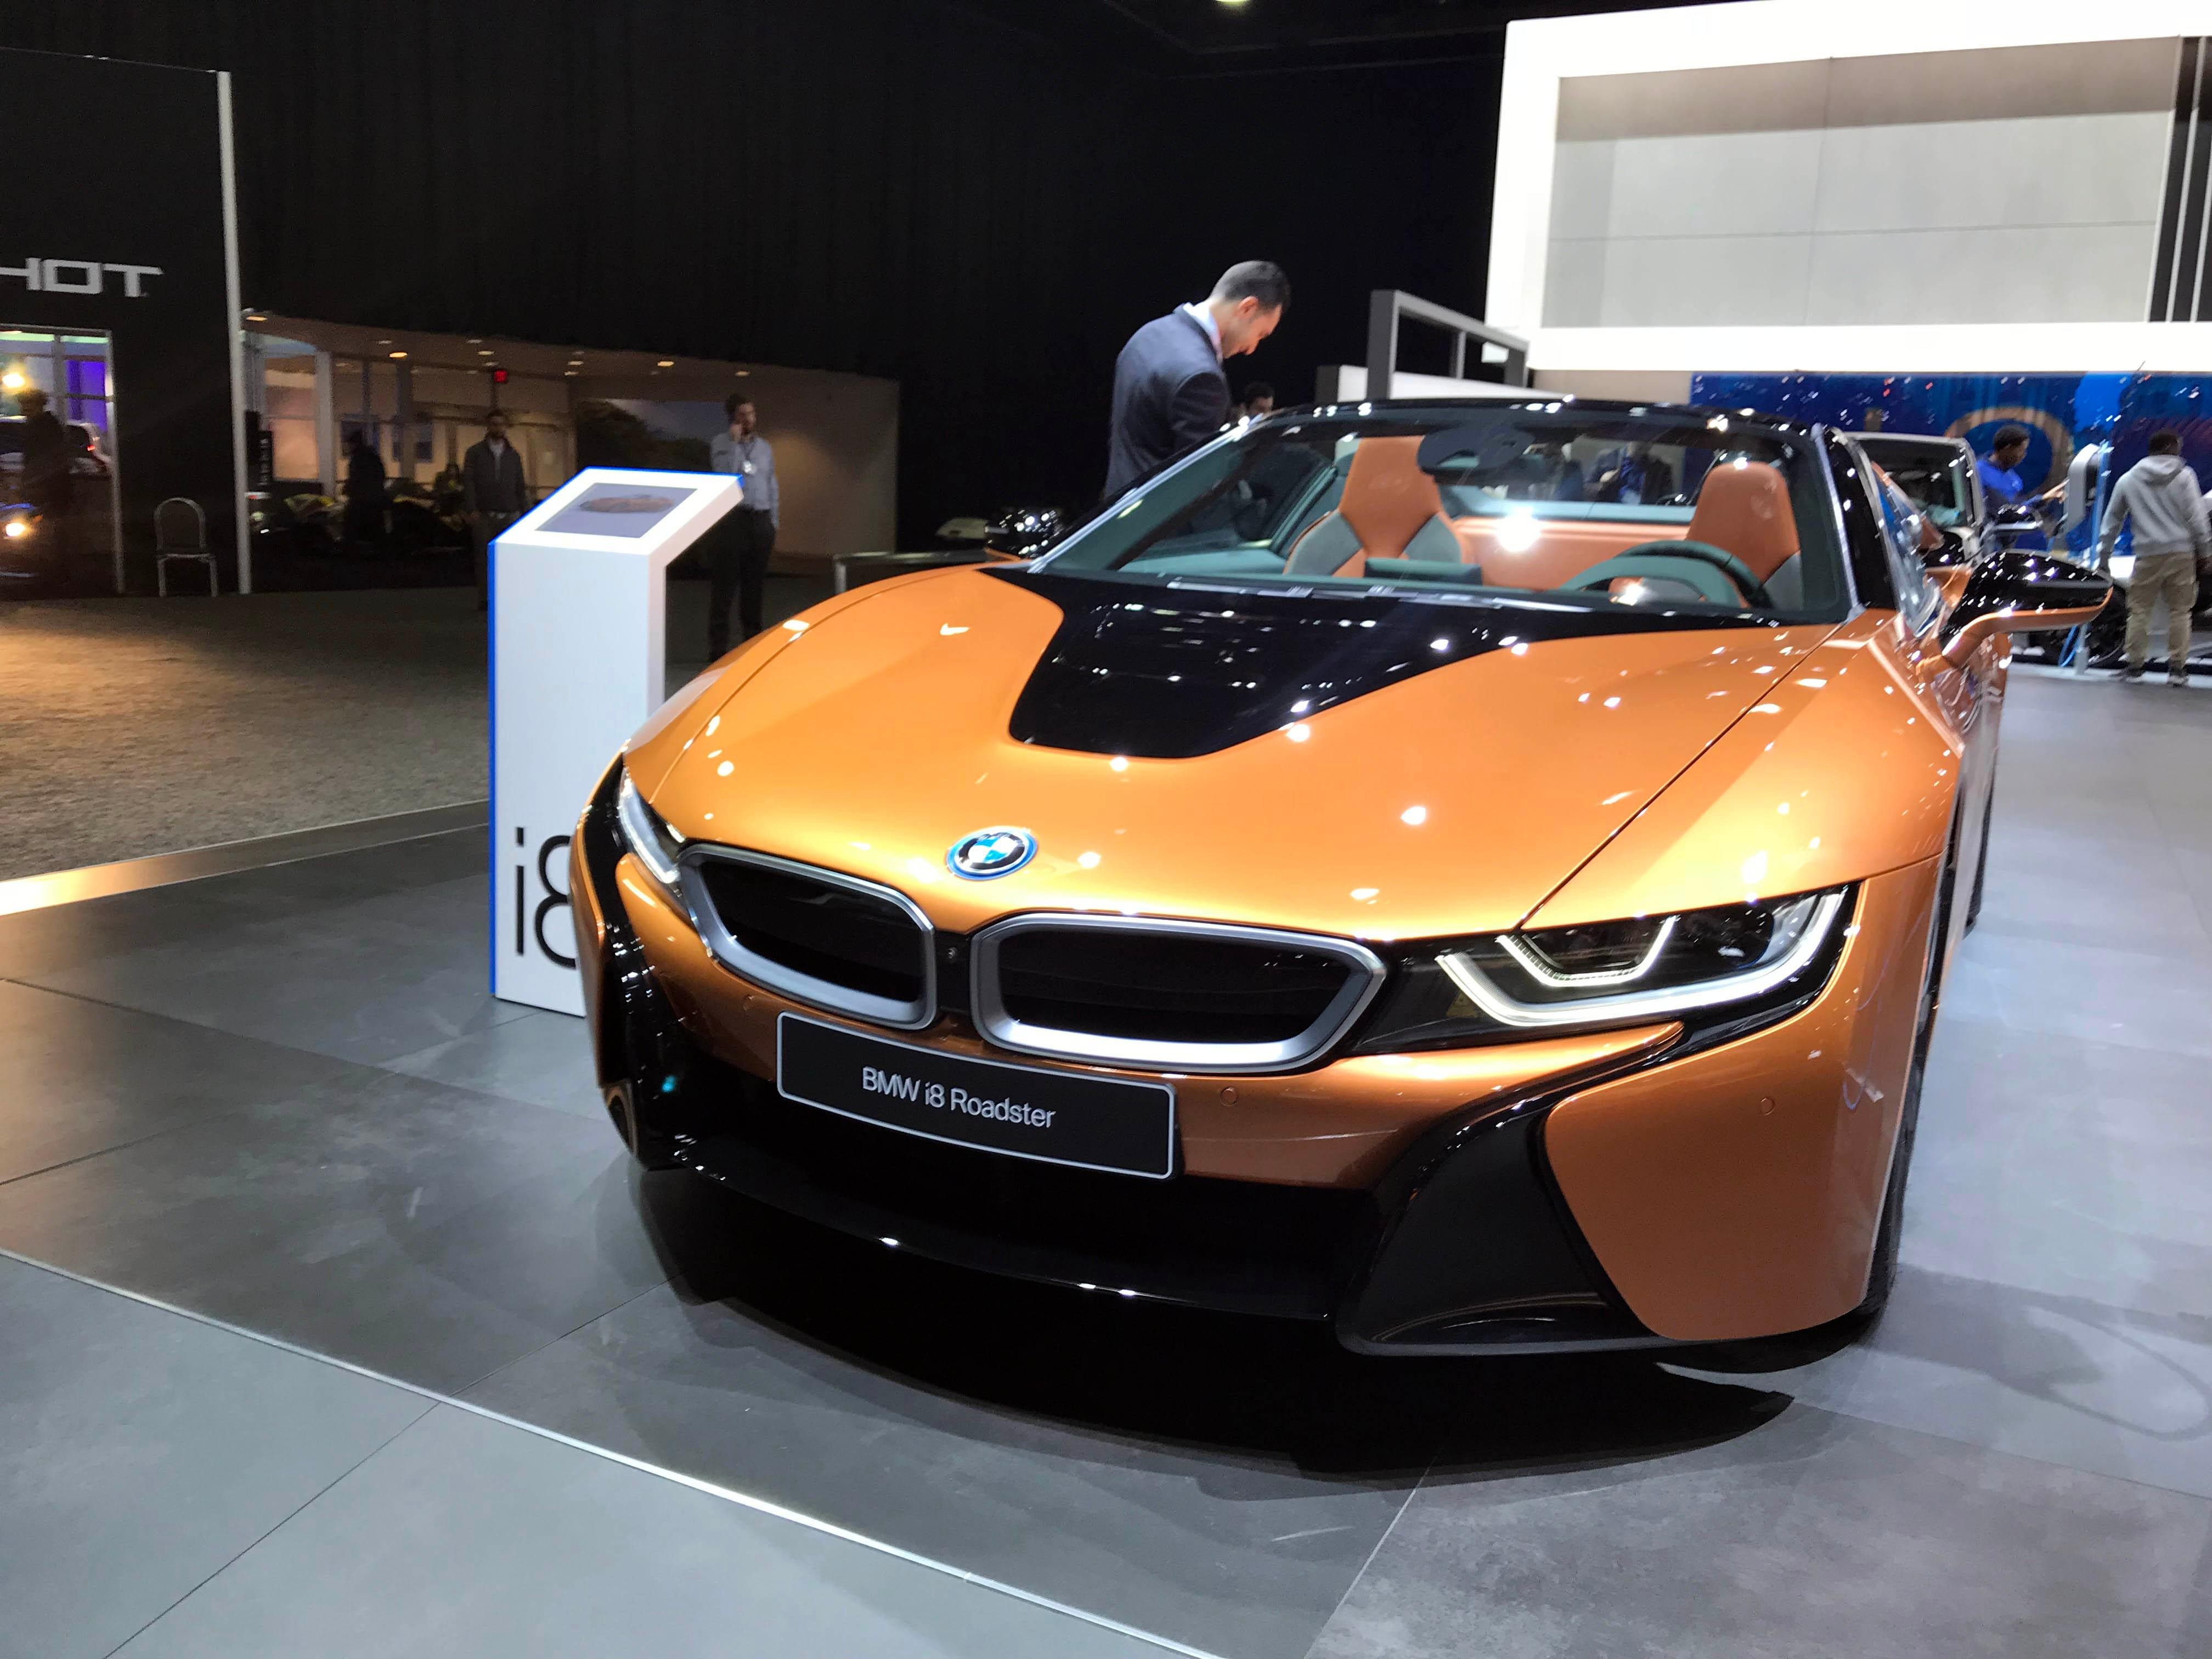 PHOTO GALLERY: Cool cars at the 2018 Detroit Auto Show | WBFF